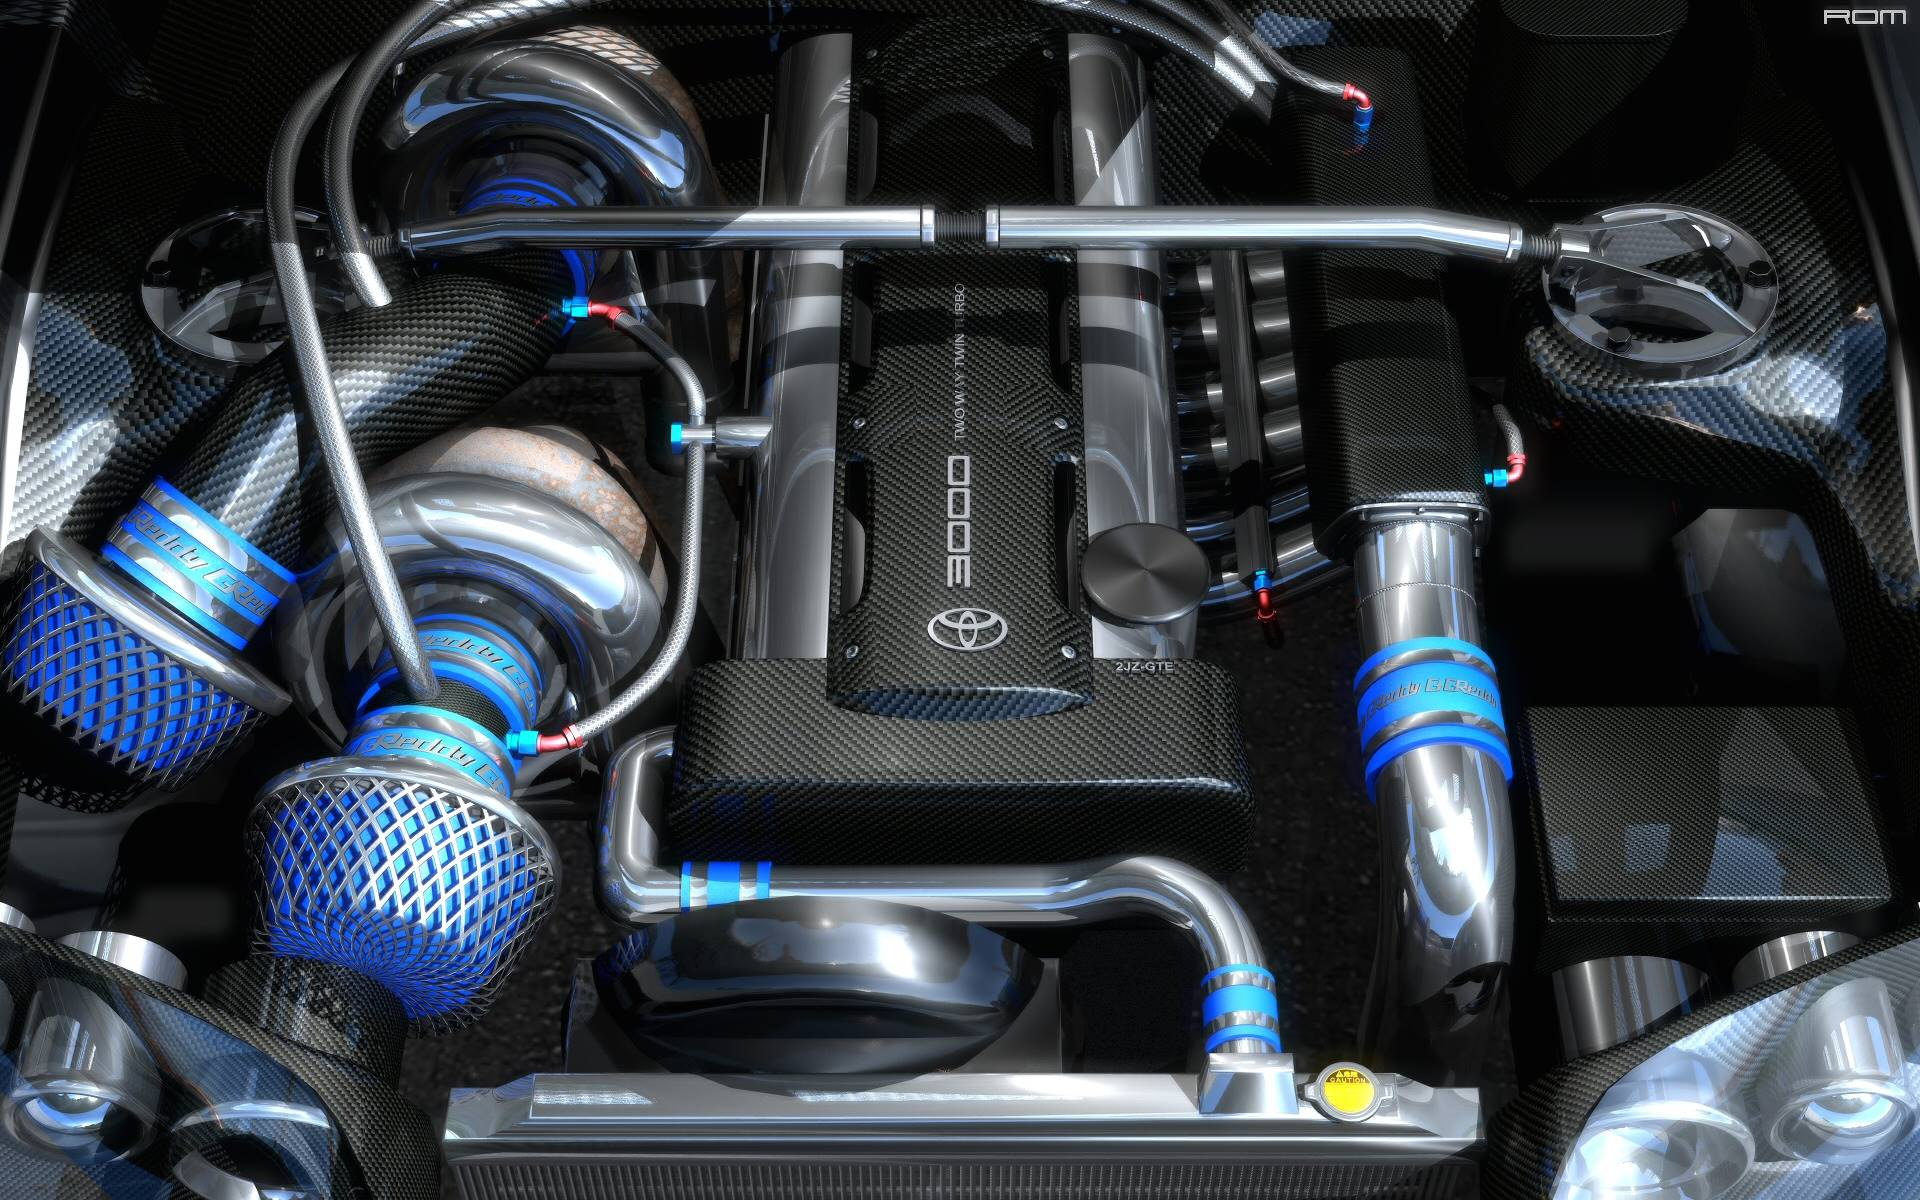 Twin Turbo Toyota Supra Engine 2JZ 1920x1200 wallpapers 1920x1200